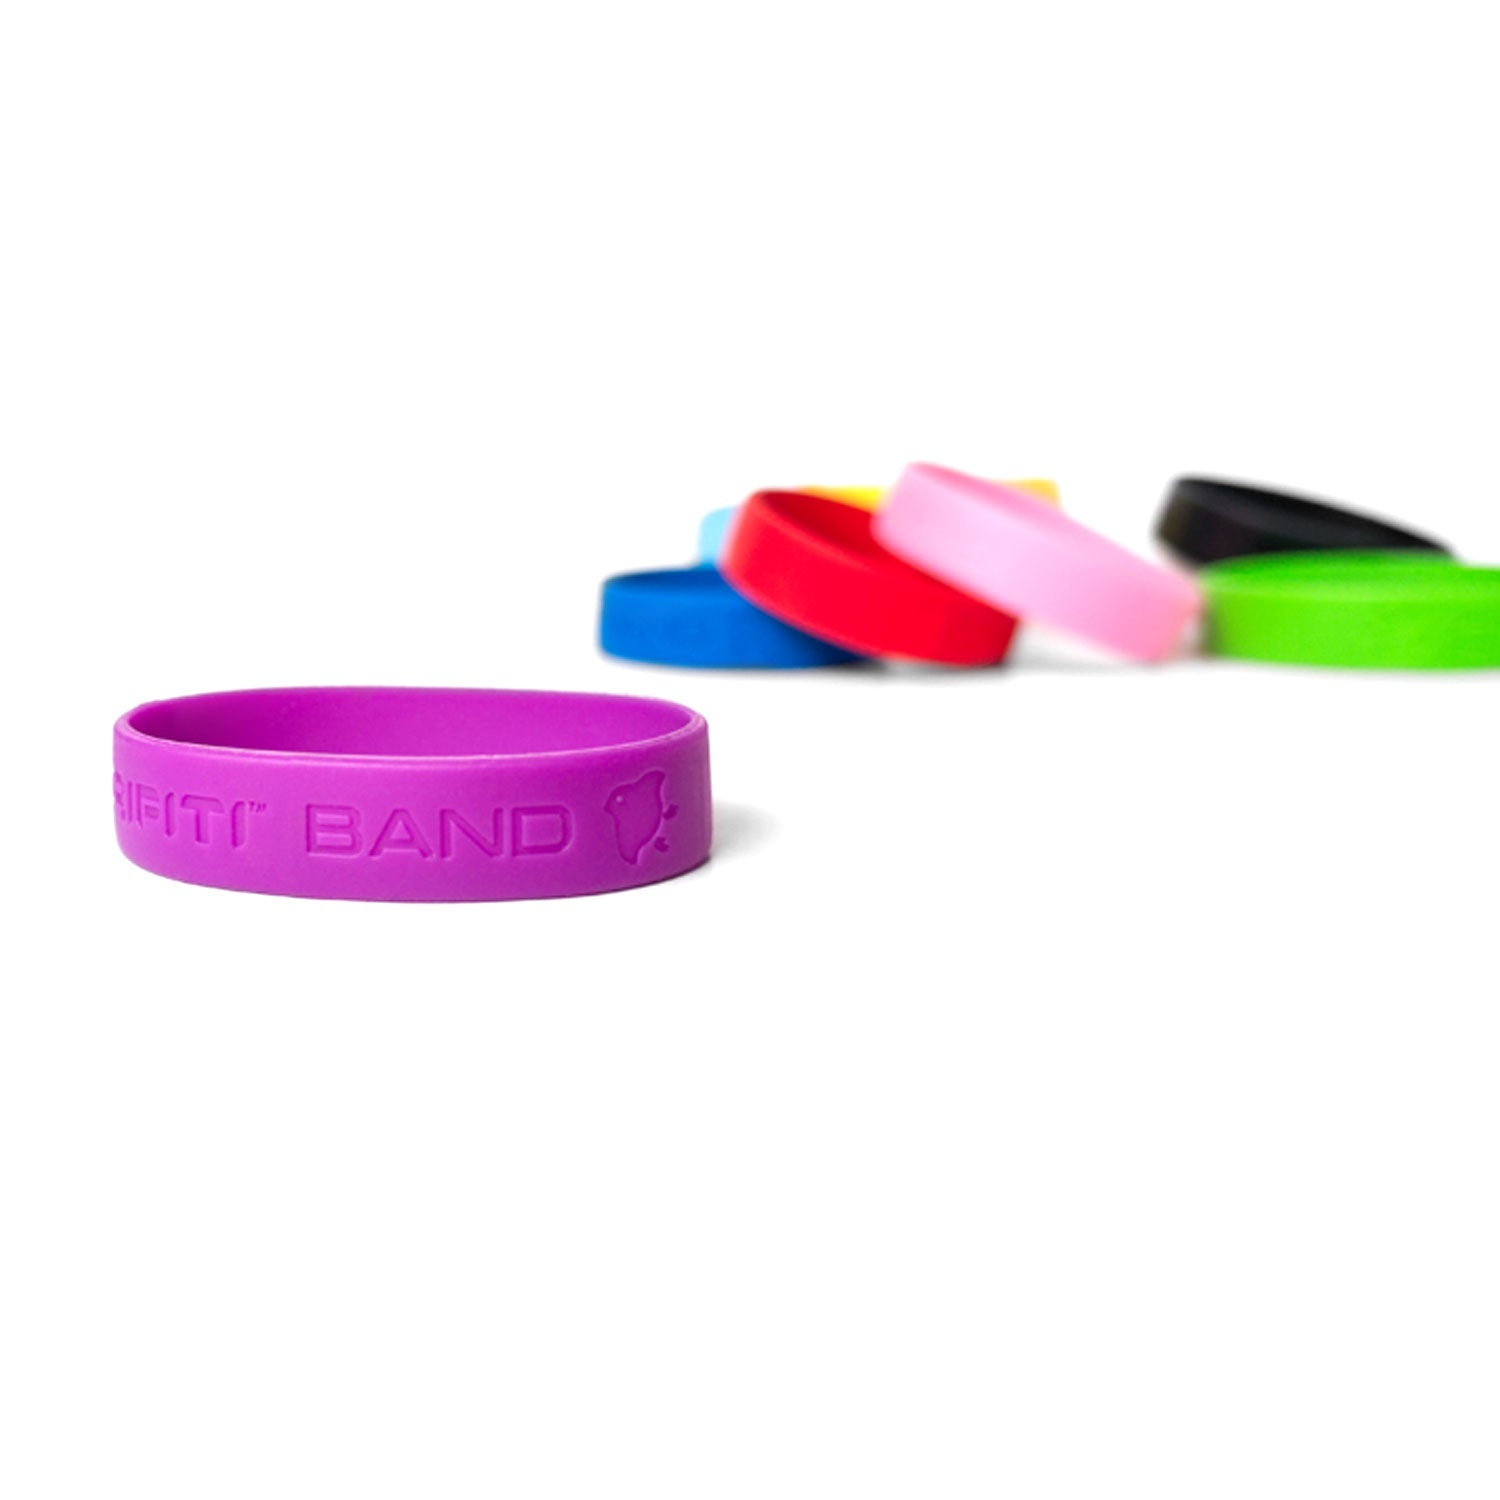 Grifiti Band Joes 4 x 0.625 inch Silicone Bands Wrist Box Cooking - Grifiti